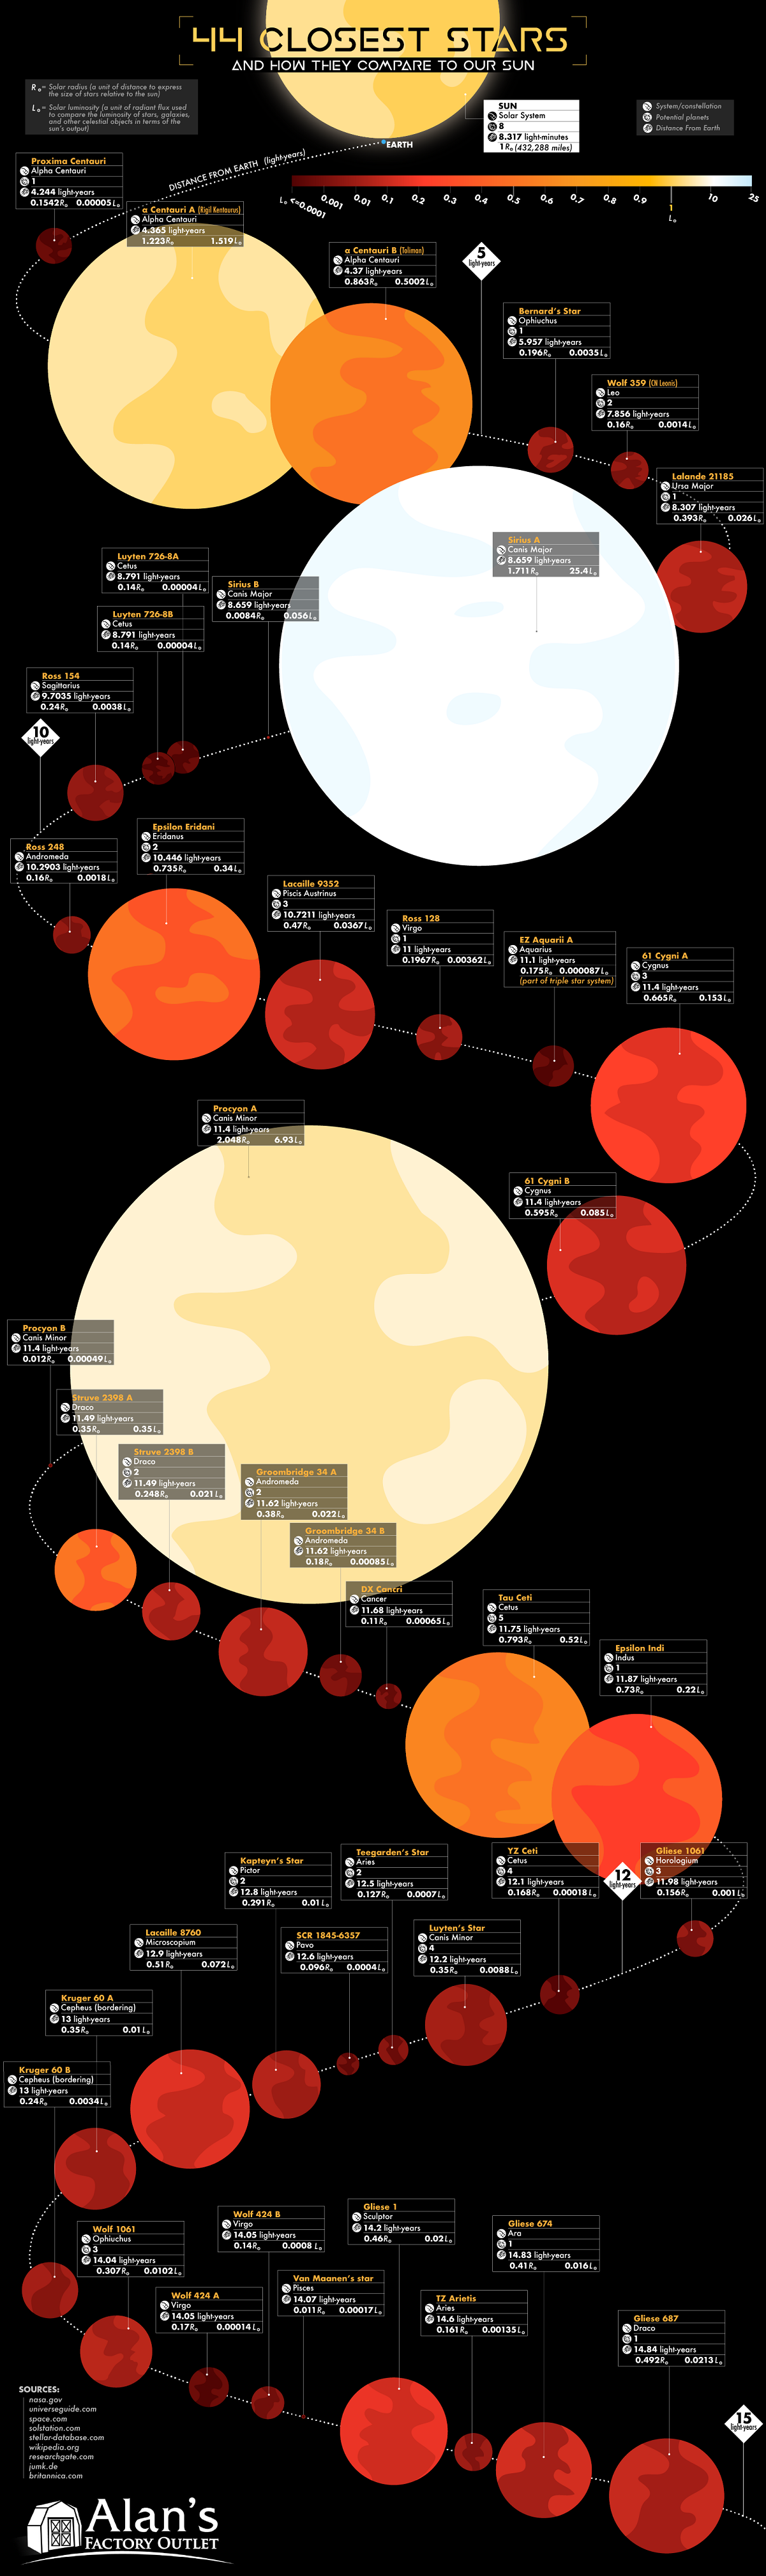 44 Closest Stars and How They Compare to Our Sun #Infographic